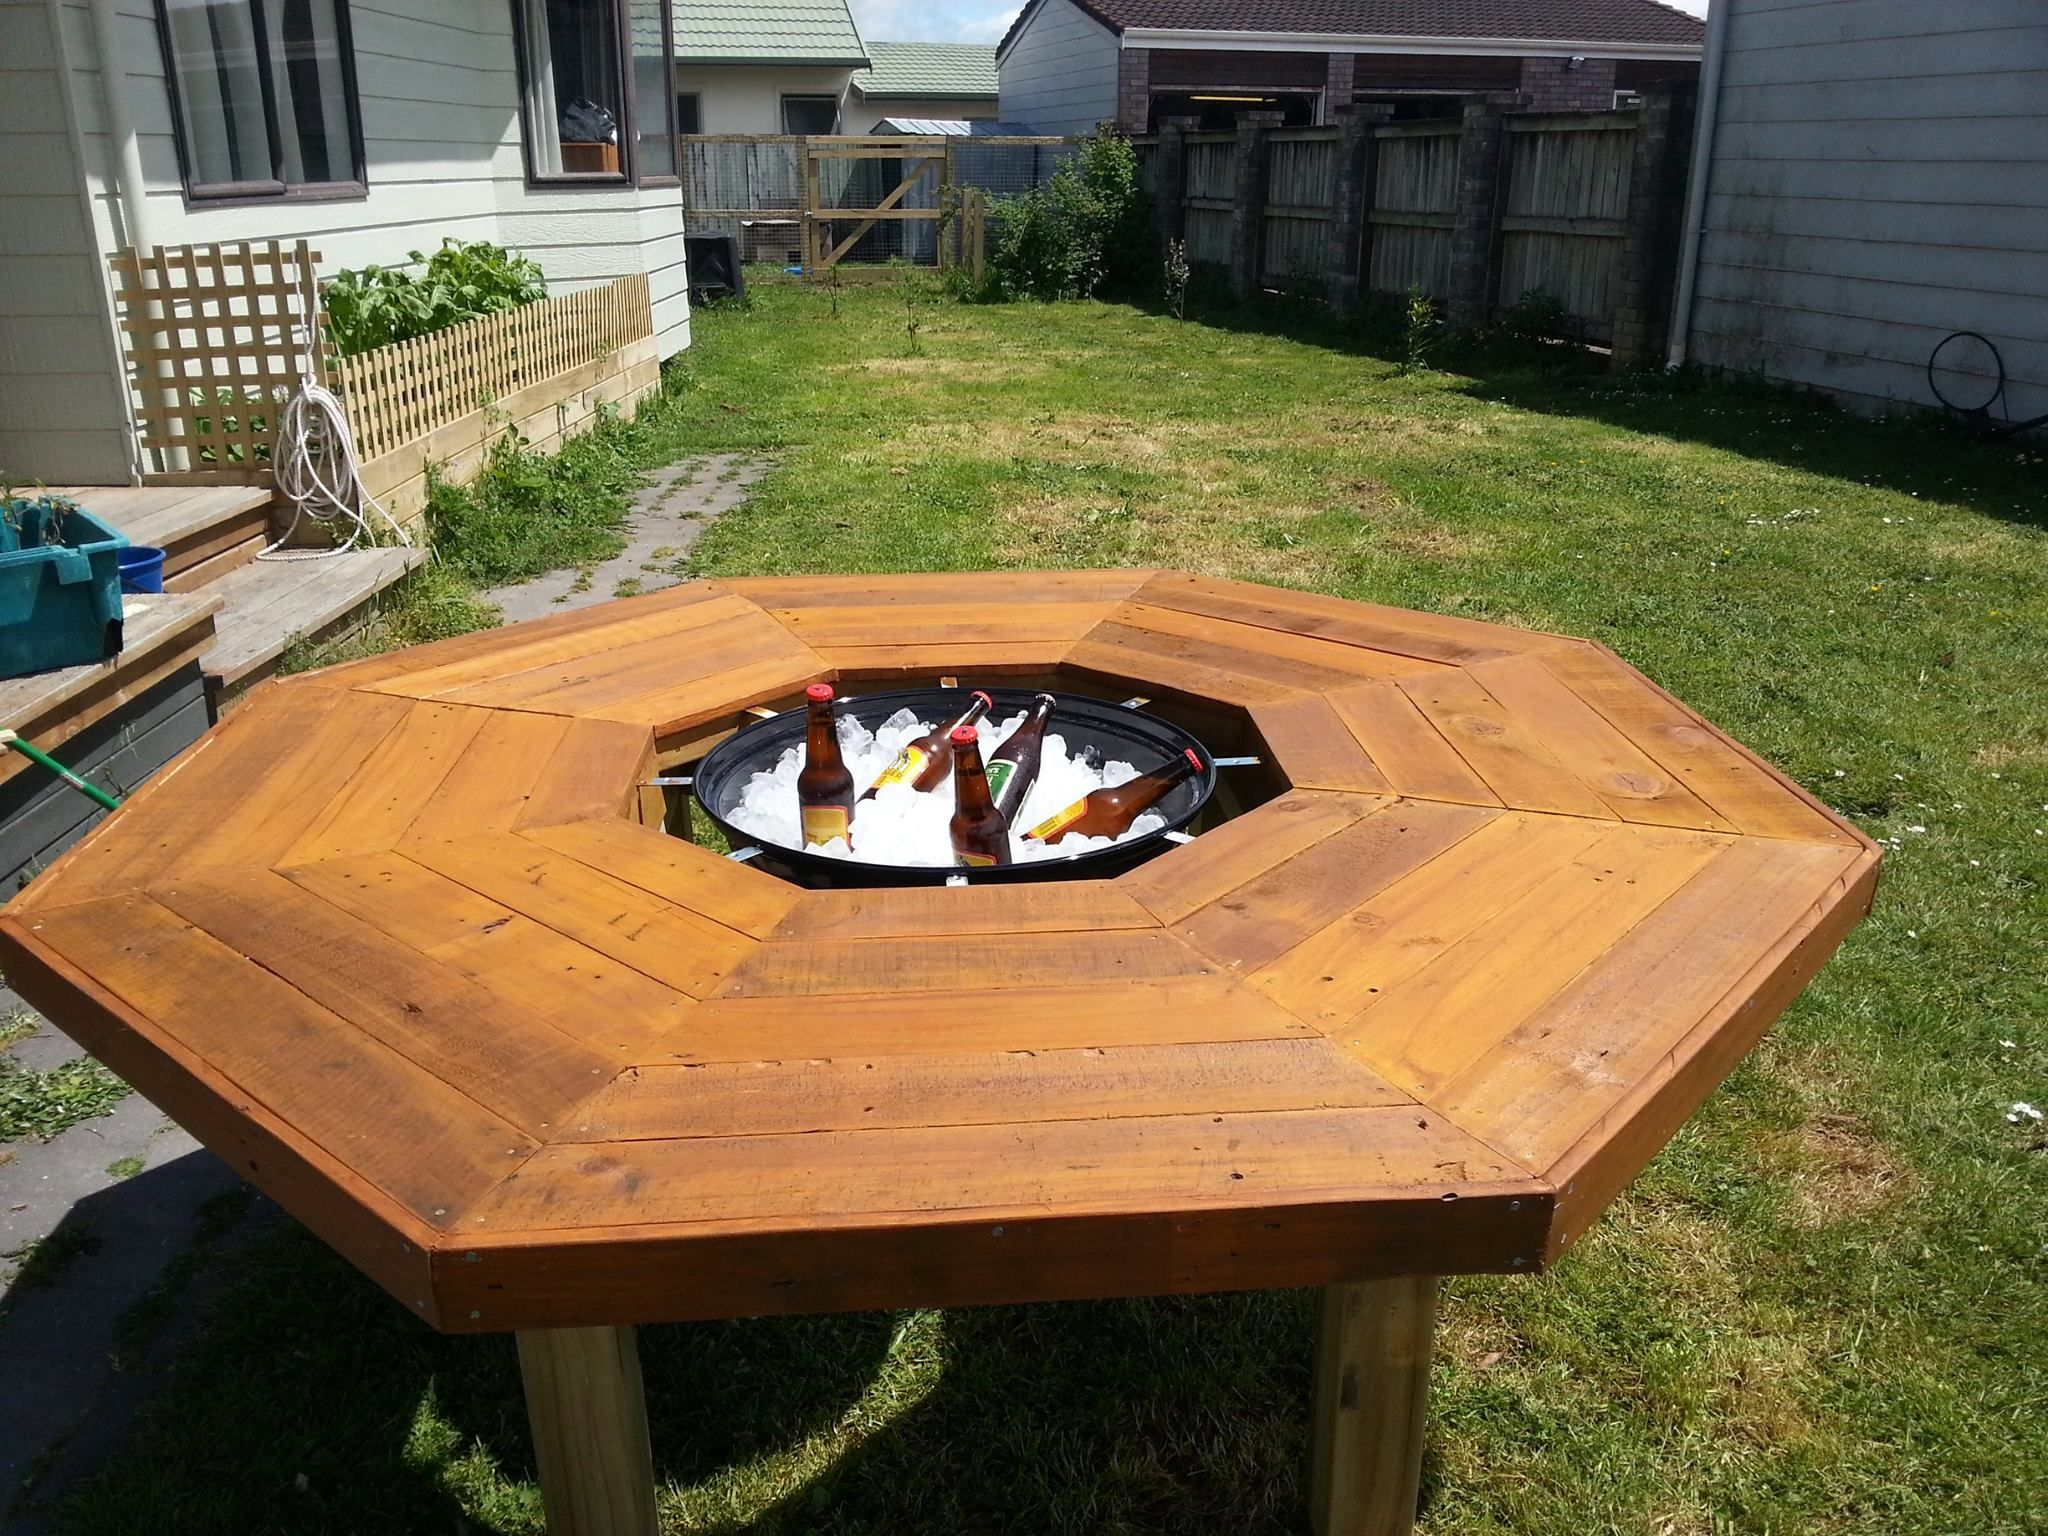 I have created an ice bucket/fire pit/bbq table Fire pit